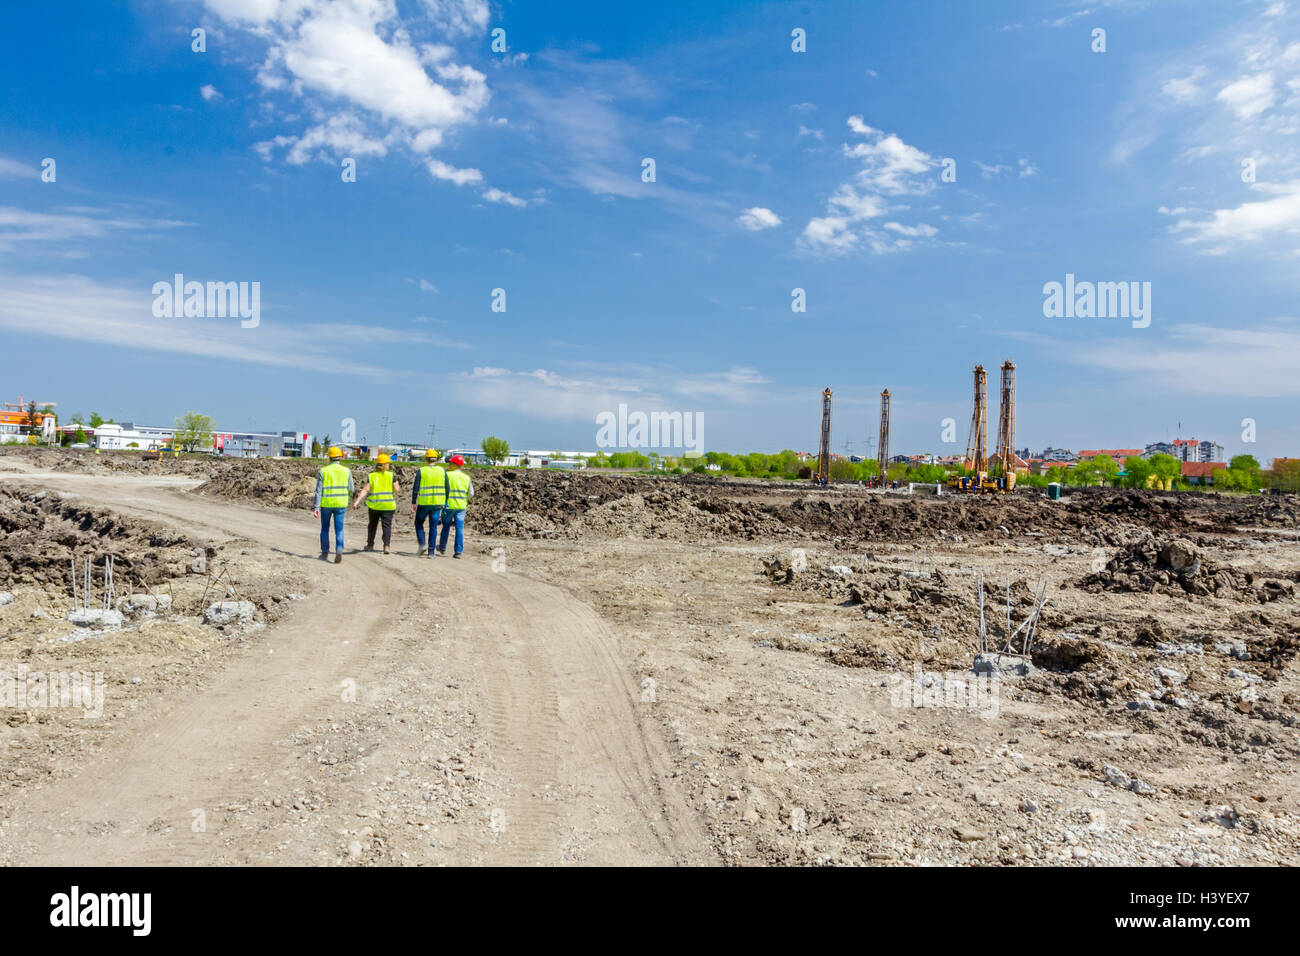 Engineers in hardhats inspecting a work site discussing about work plan. - Stock Image